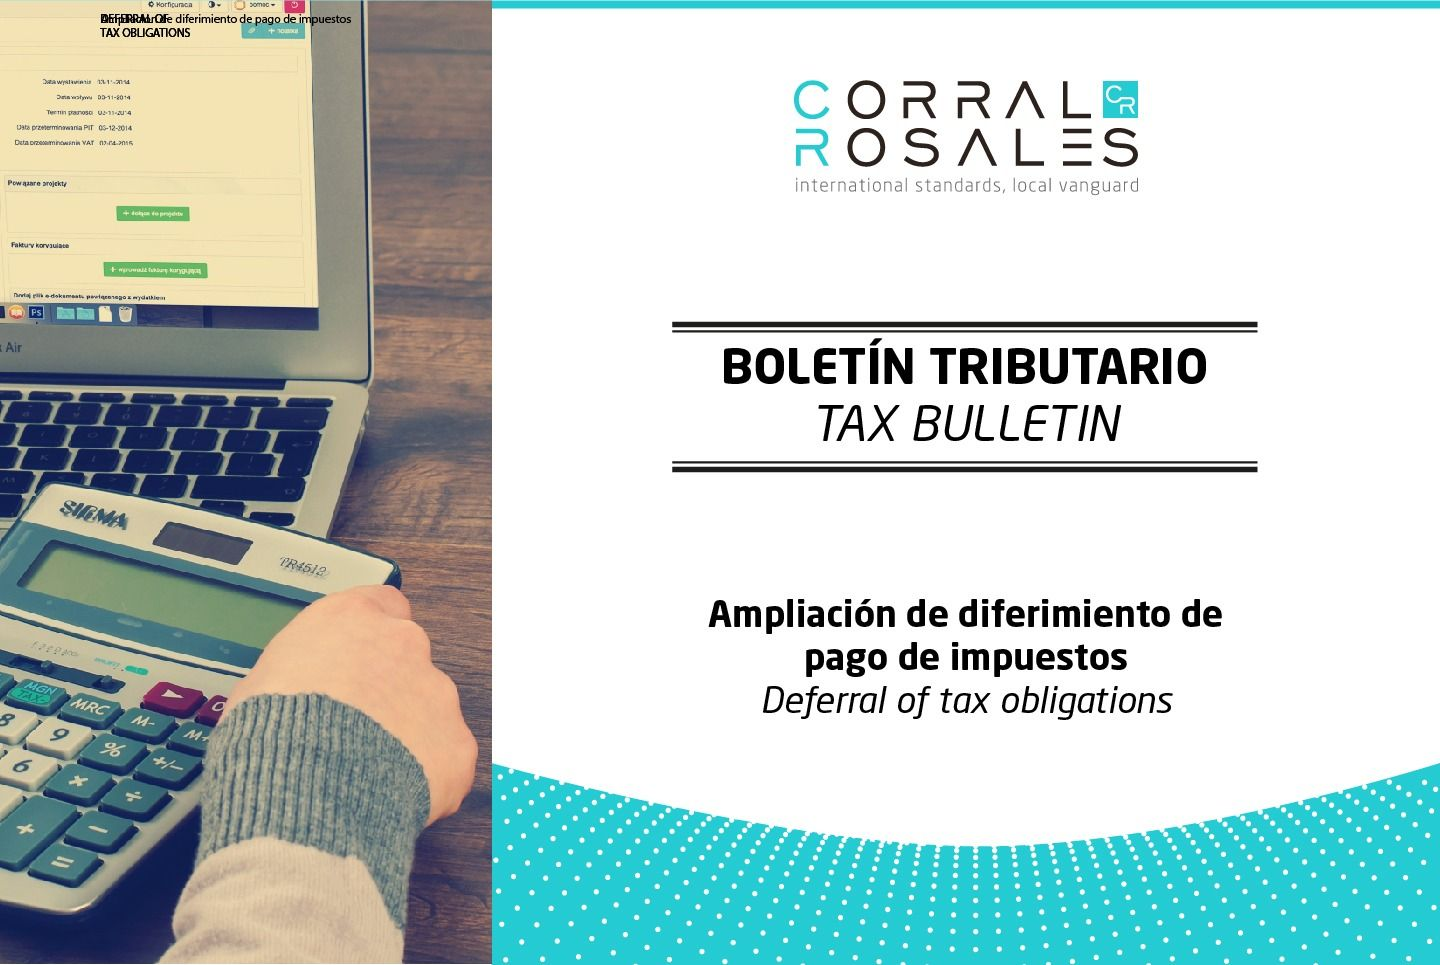 deferral-of-tax-obligations